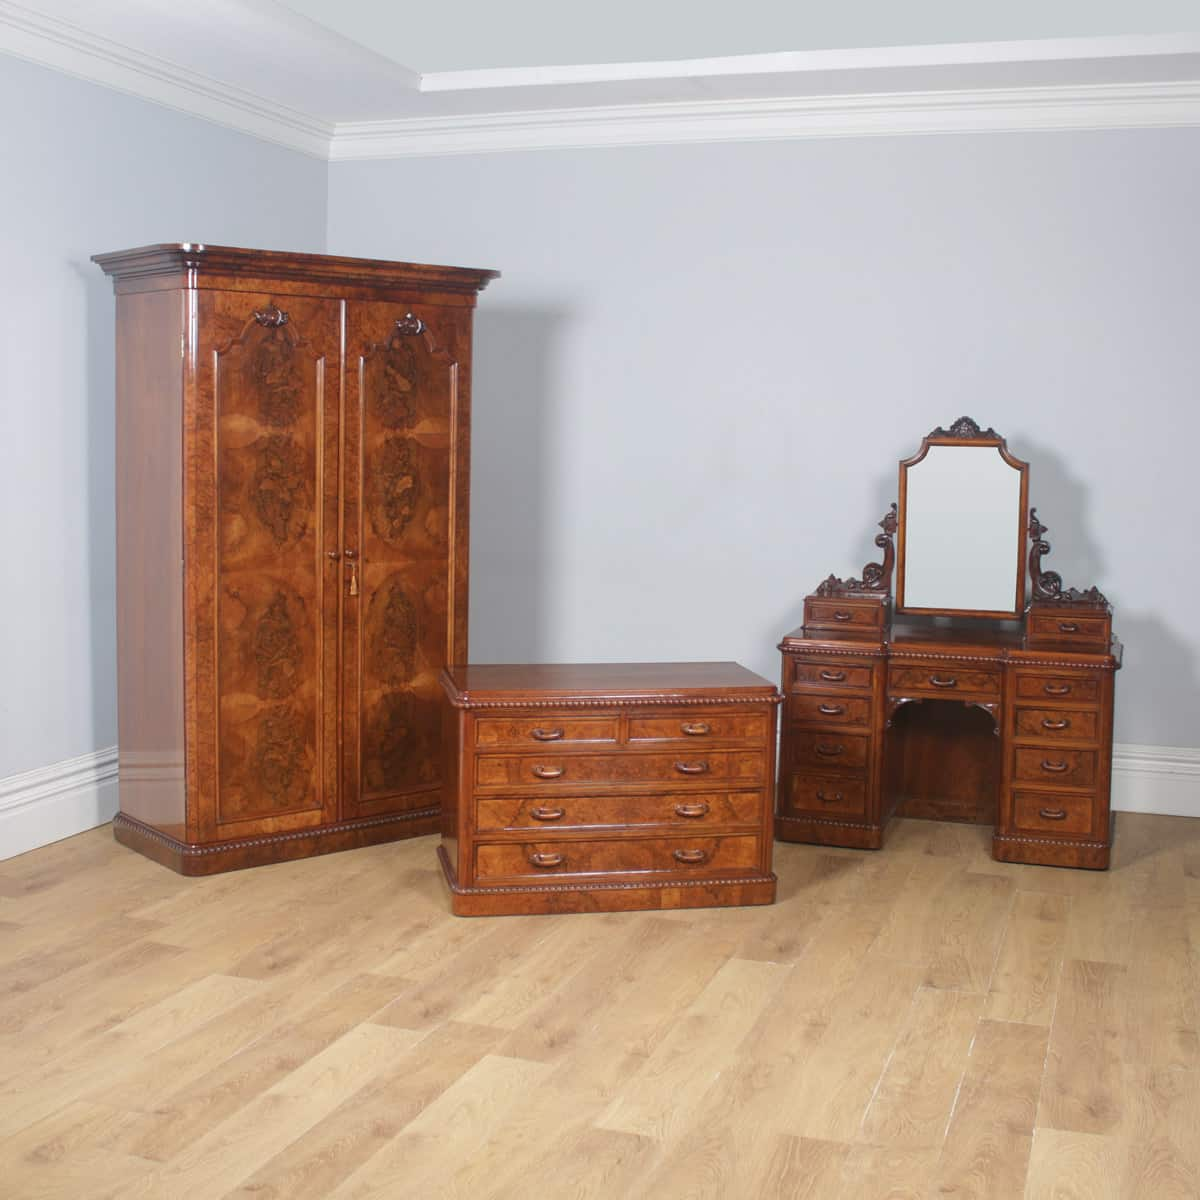 Antique Furniture Generous Outstanding Quality Burr Walnut Art Deco Double Bed Antiques